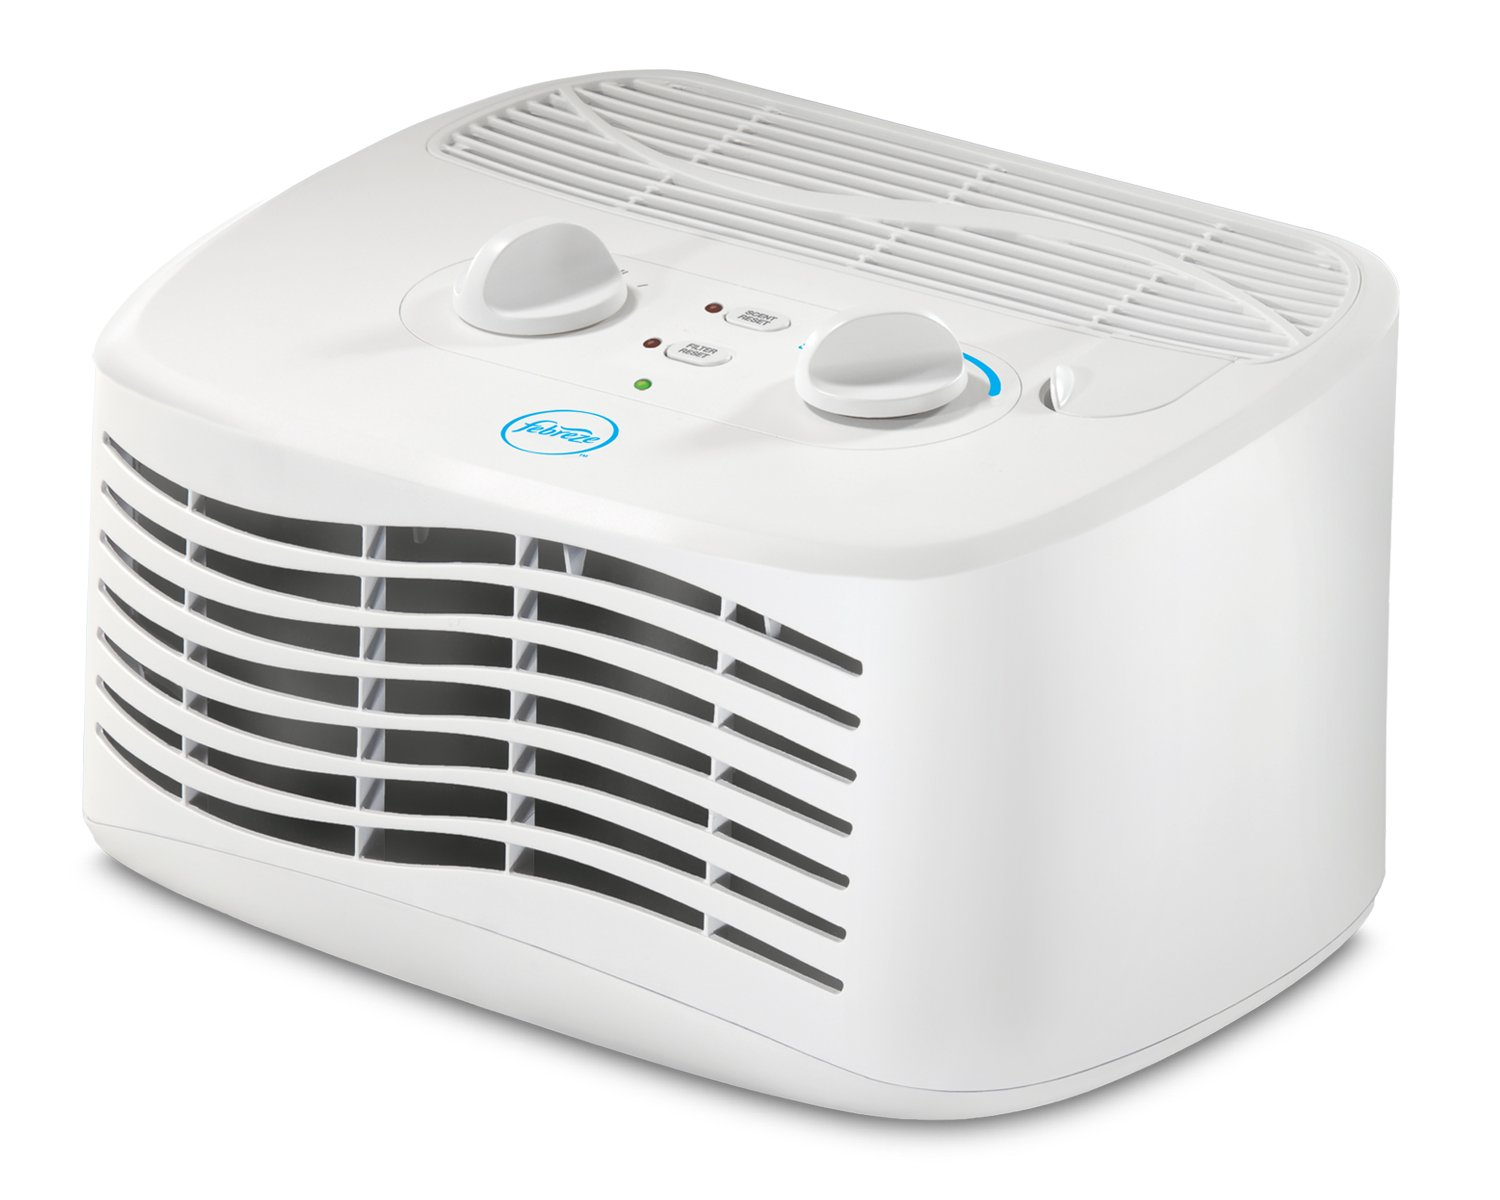 Febreze FHT170W HEPA-Type Tabletop Air Purifier Kaz